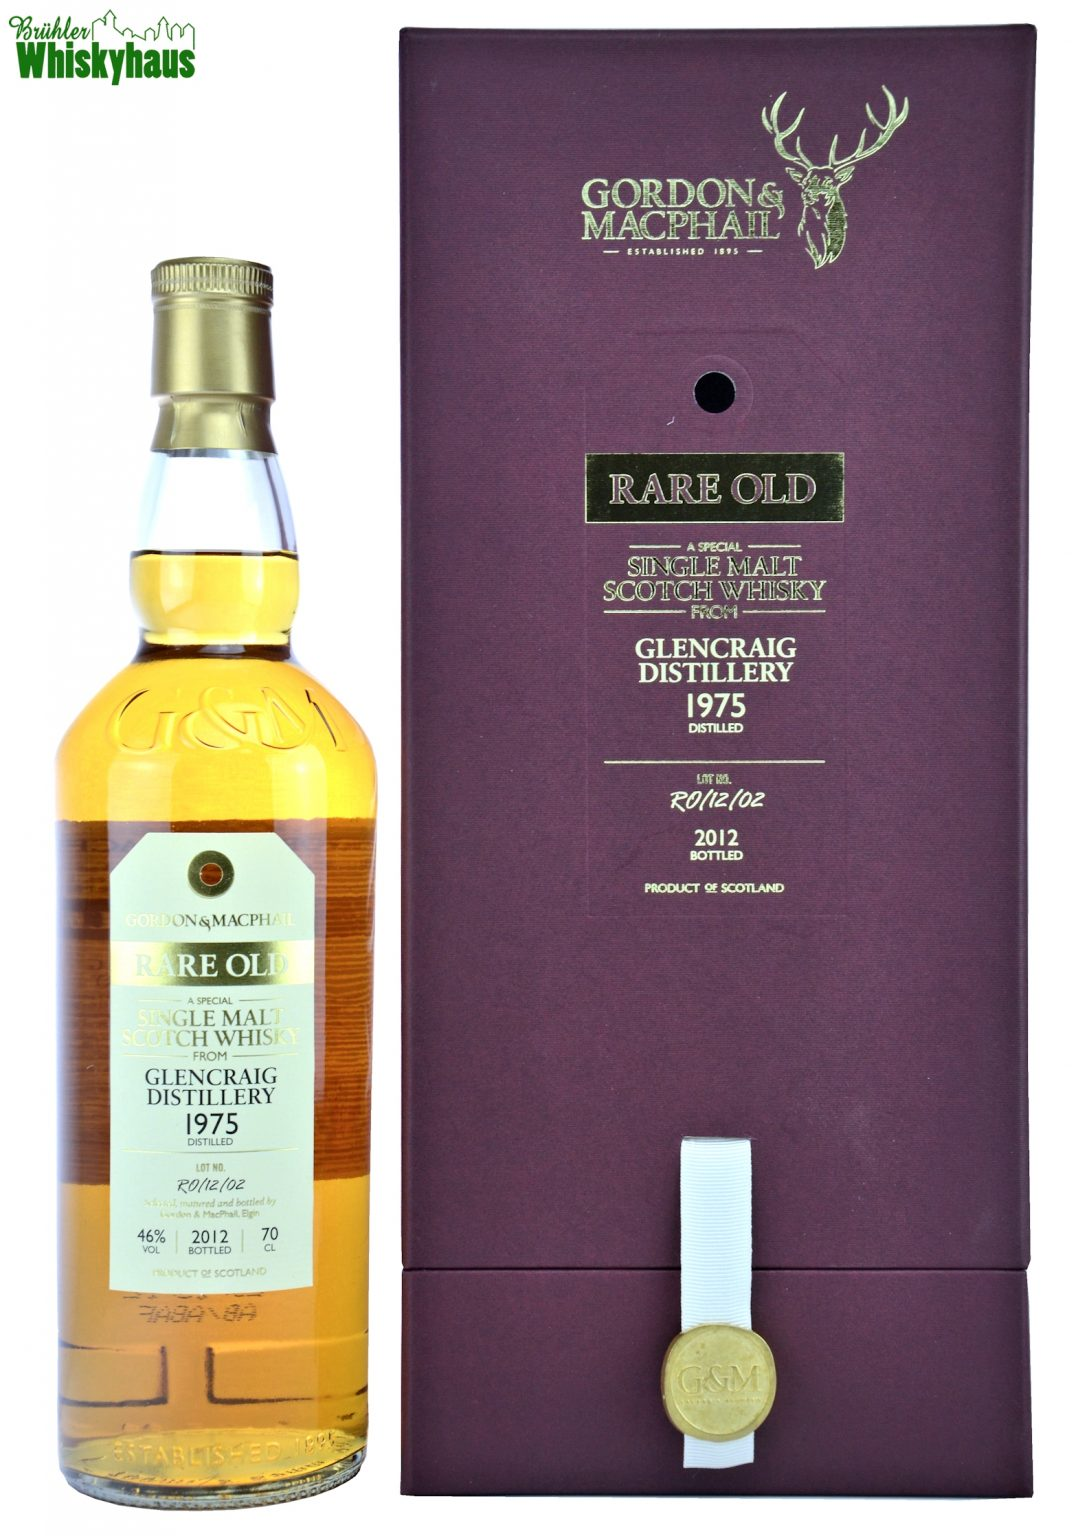 Glencraig Vintage 1975 - 37 Jahre - Refill Bourbon Hogshead - Gordon & MacPhail - Single Malt Scotch Whisky